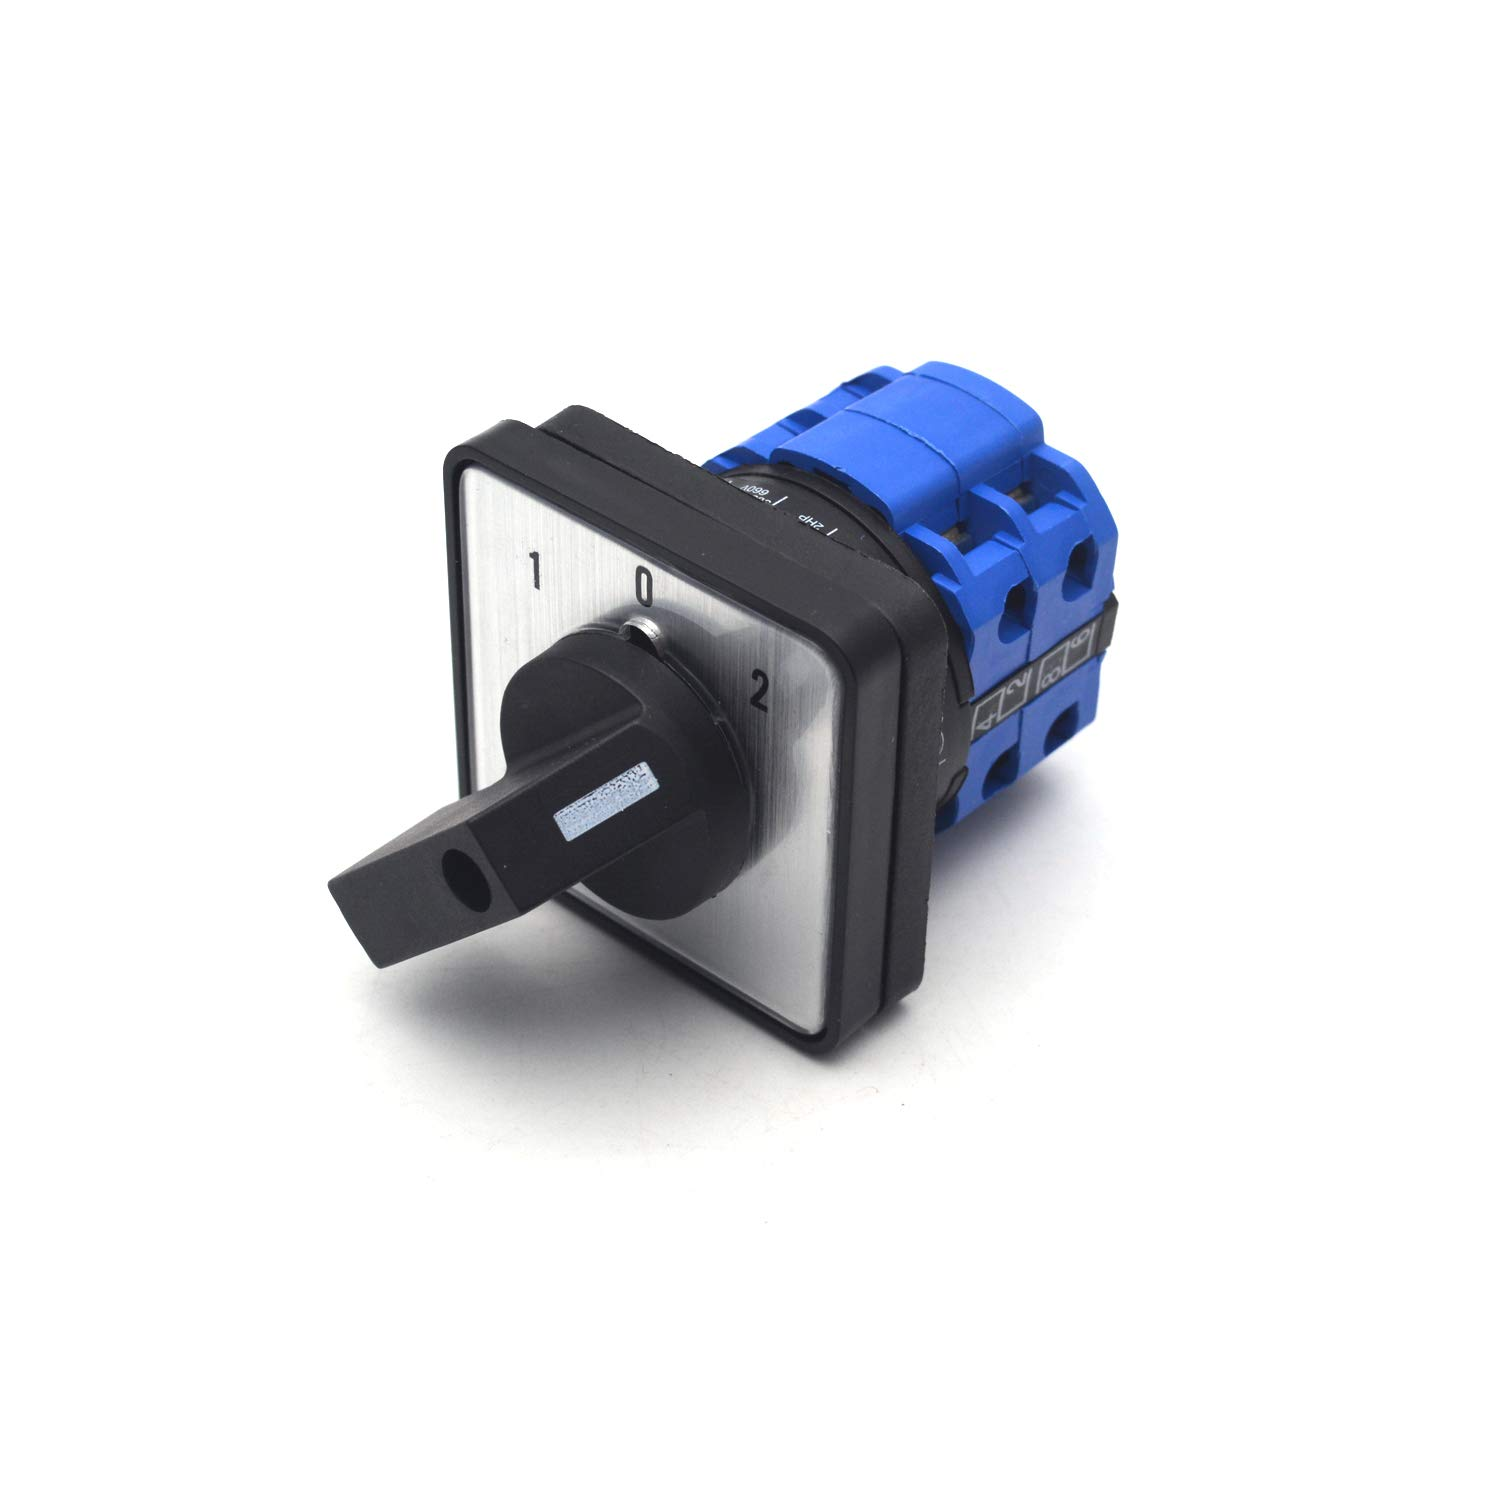 Antrader AC 660V 20A 12 Screw Terminal 4 Position Rotary Cam Changeover Switch Guangzhou Openfind Electronic Commerce CO. LTD